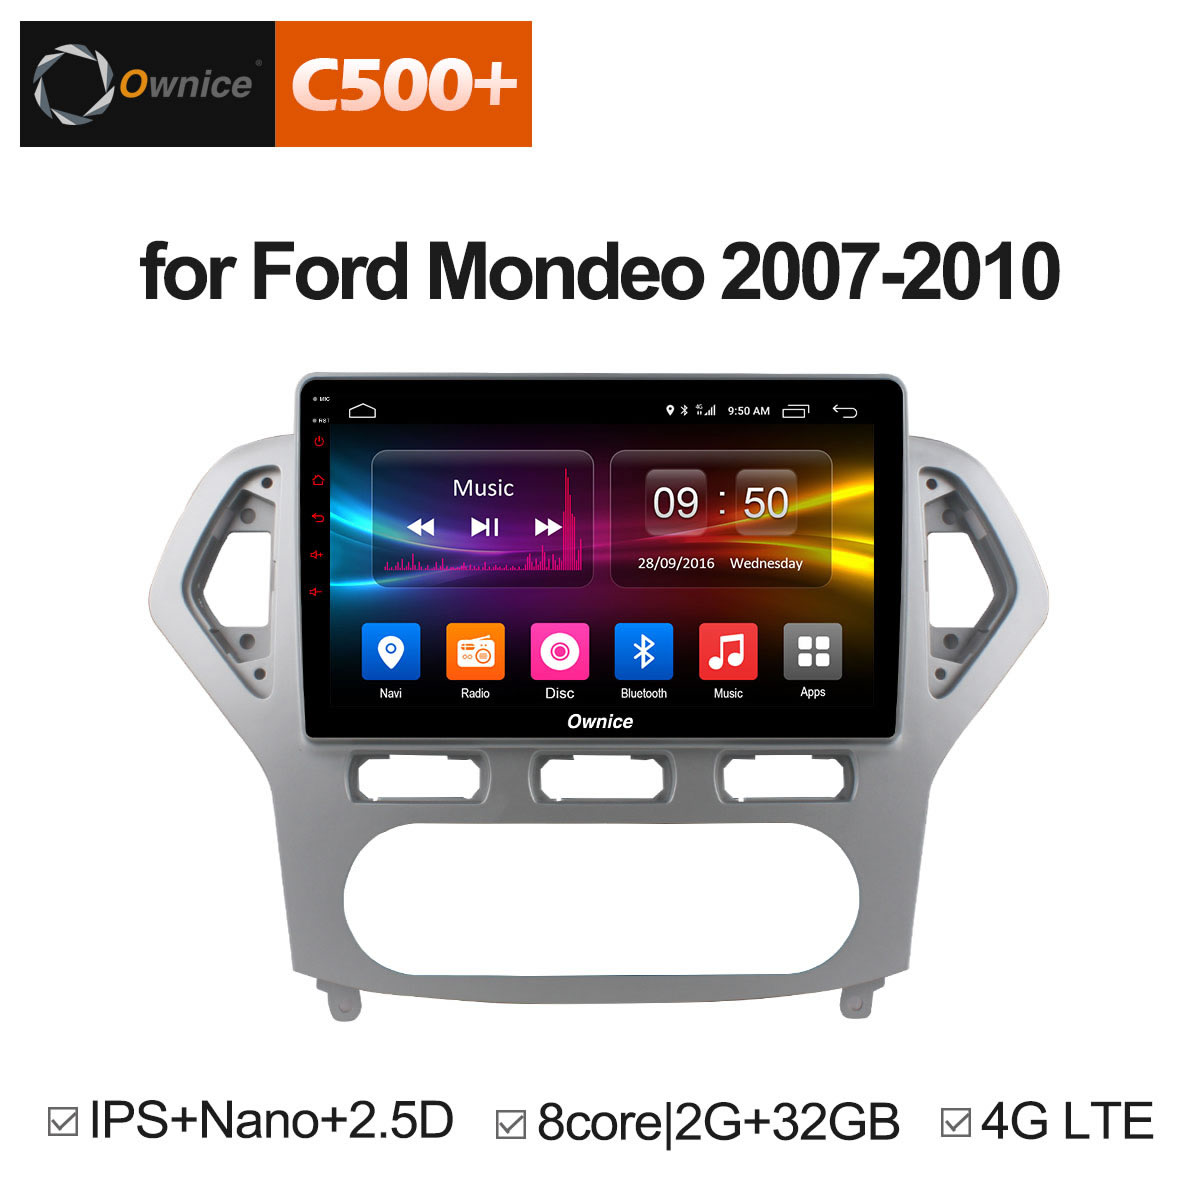 Ownice 10.1 C500+ G10 2.5D Android 8.1 Octa Core Car DVD GPS Navigation Radio Player for Ford Mondeo 2007 - 2010 ROM 32G 4G LTE ownice c500 4g sim lte octa 8 core android 6 0 for kia ceed 2013 2015 car dvd player gps navi radio wifi 4g bt 2gb ram 32g rom